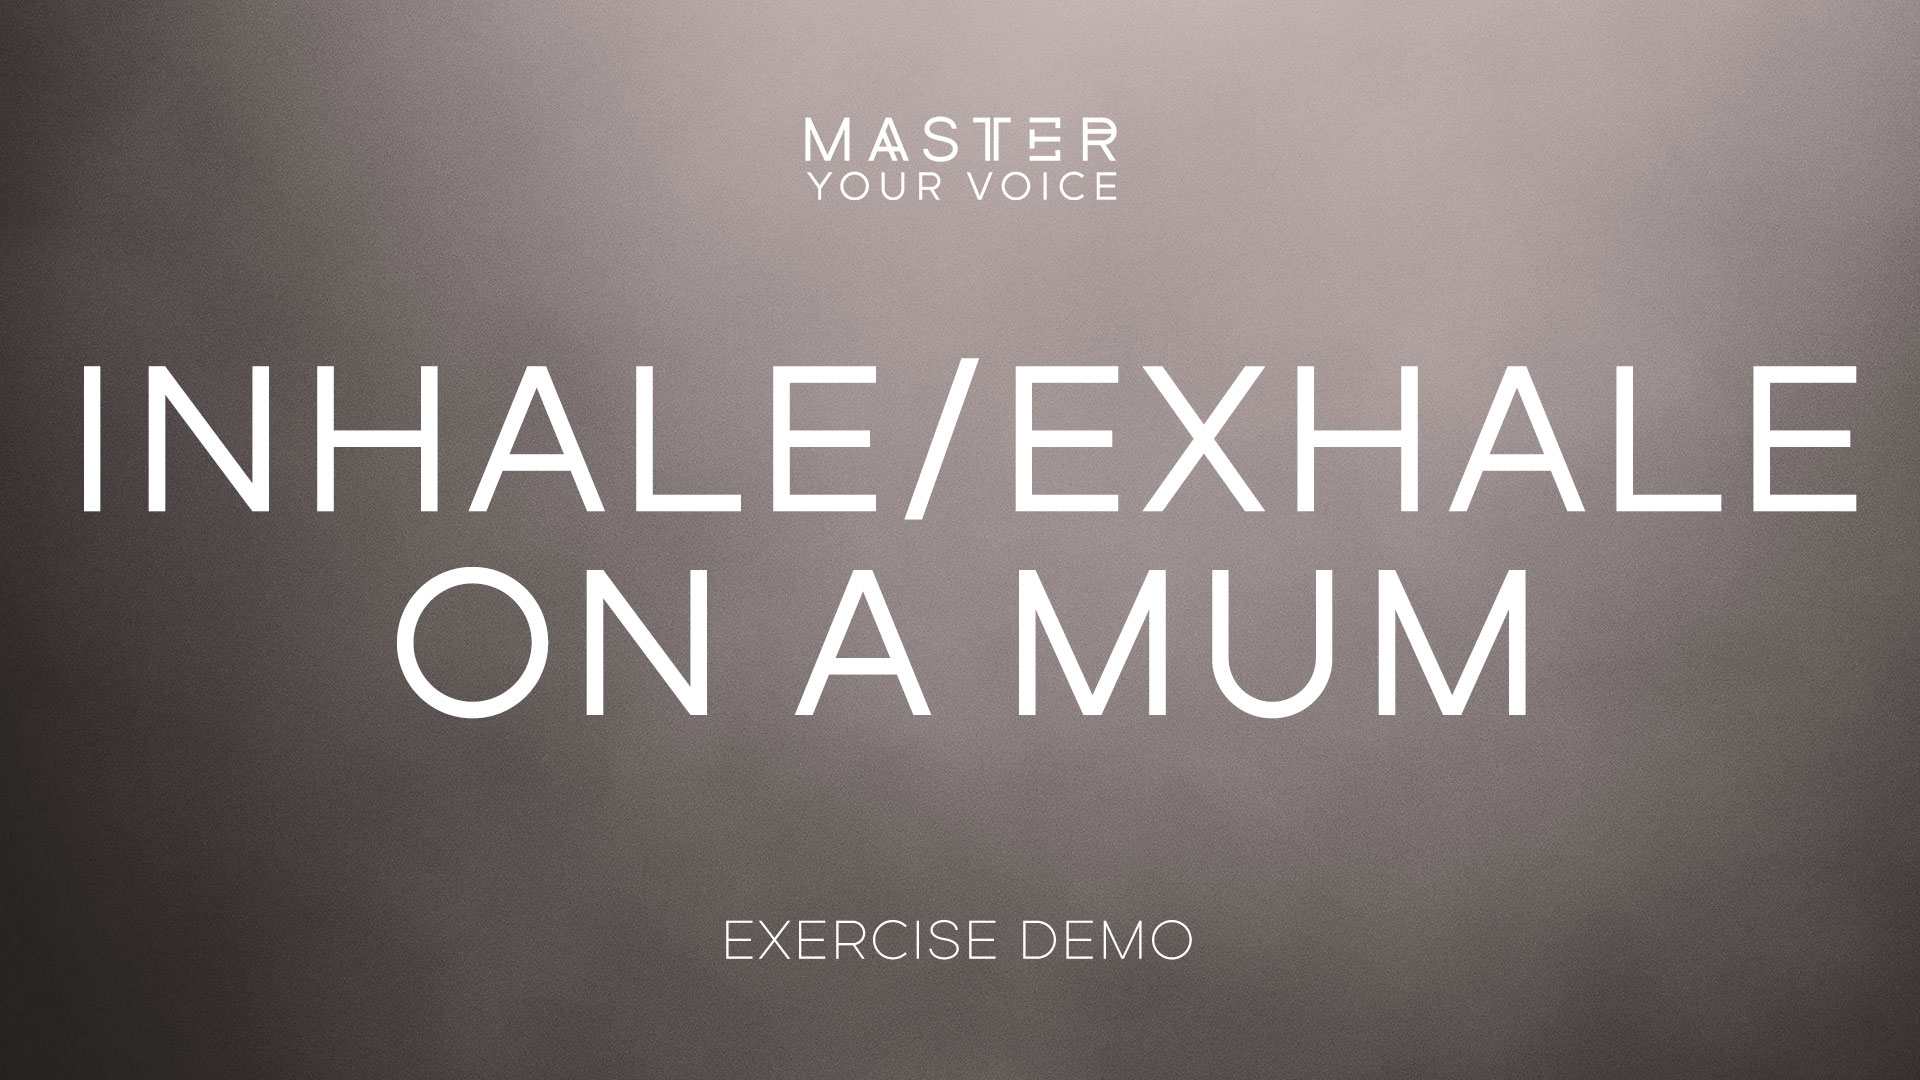 Inhale/Exhale on a Mum Exercise Demo